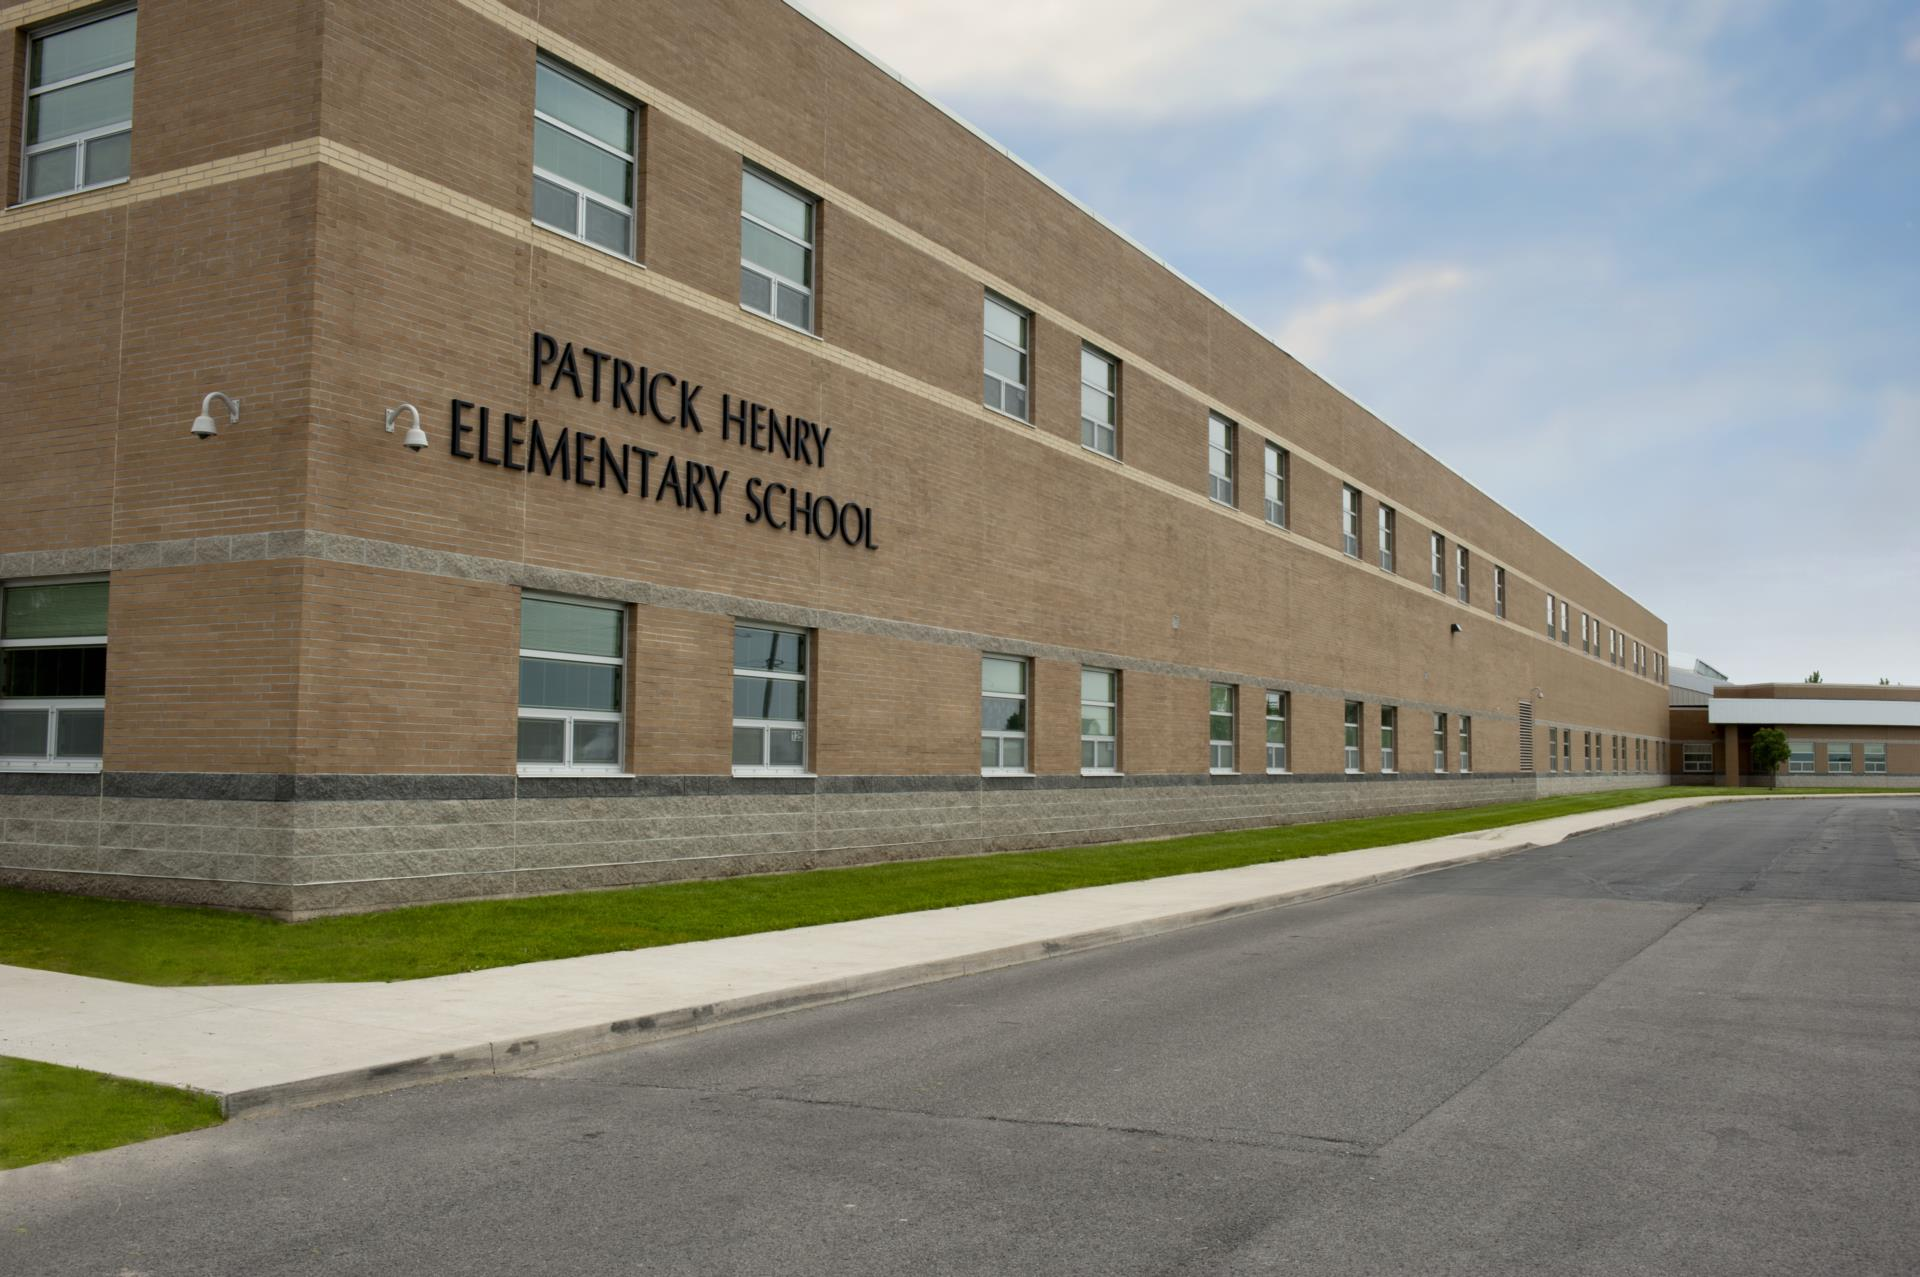 Patrick Henry Elementary Building Entrance Image